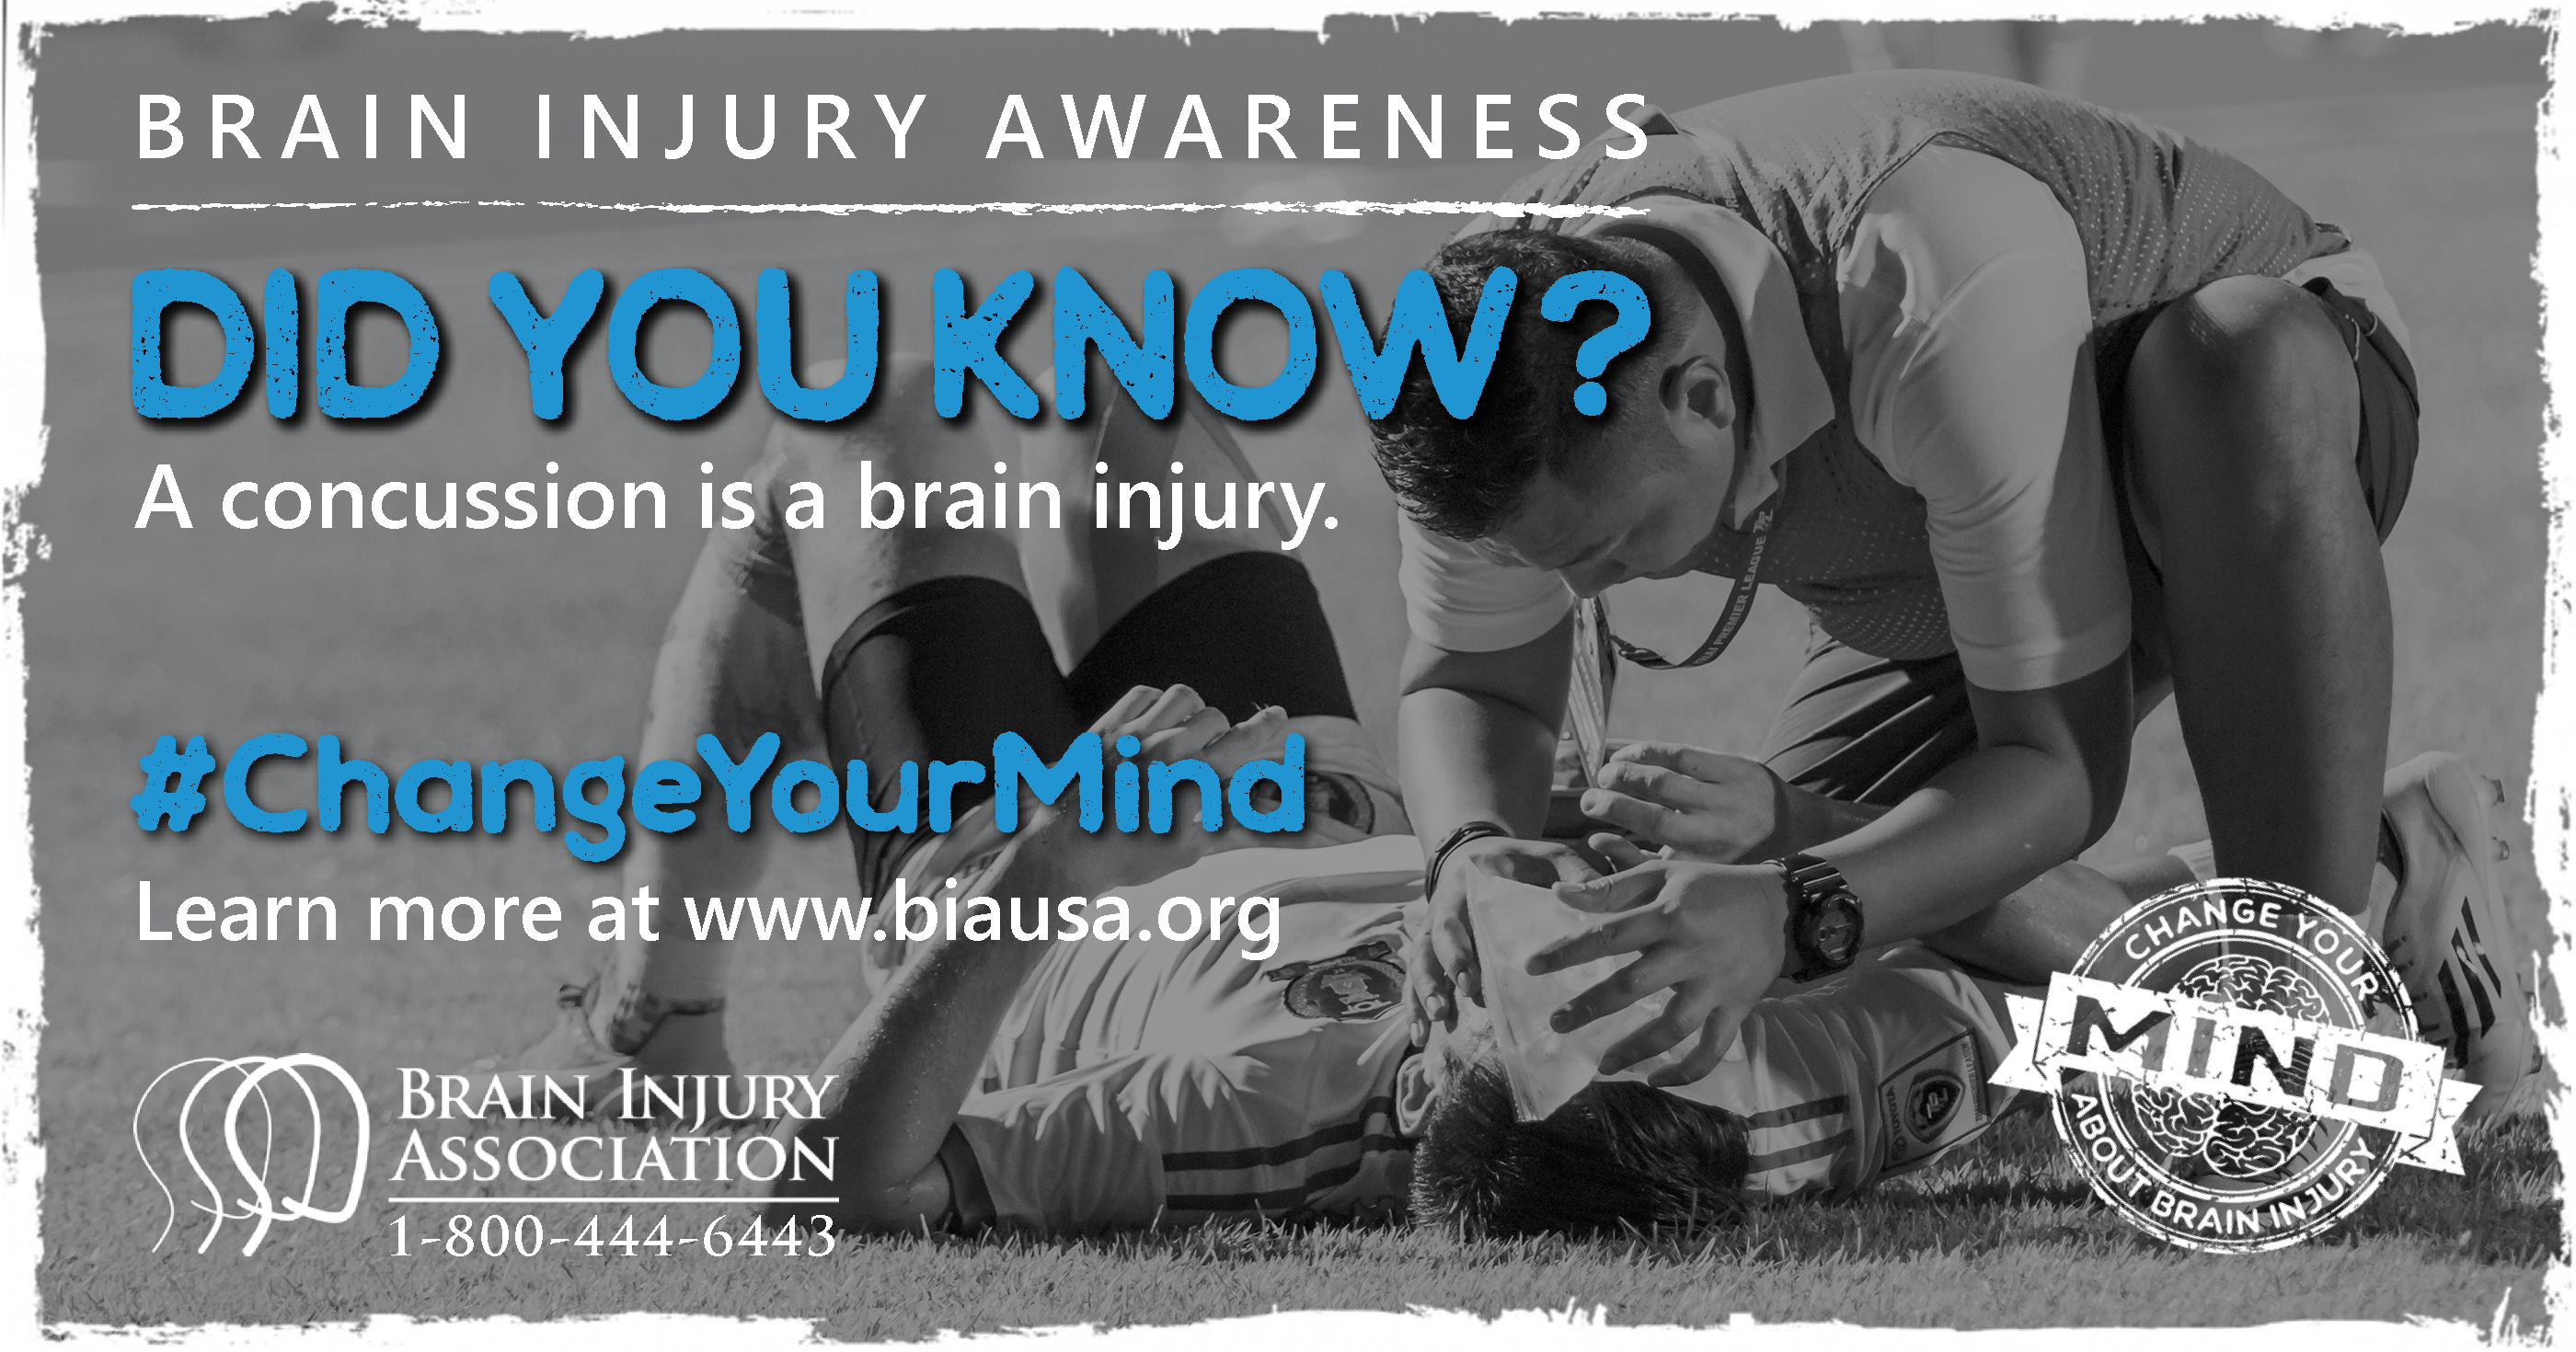 A Concussion is a Brain Injury